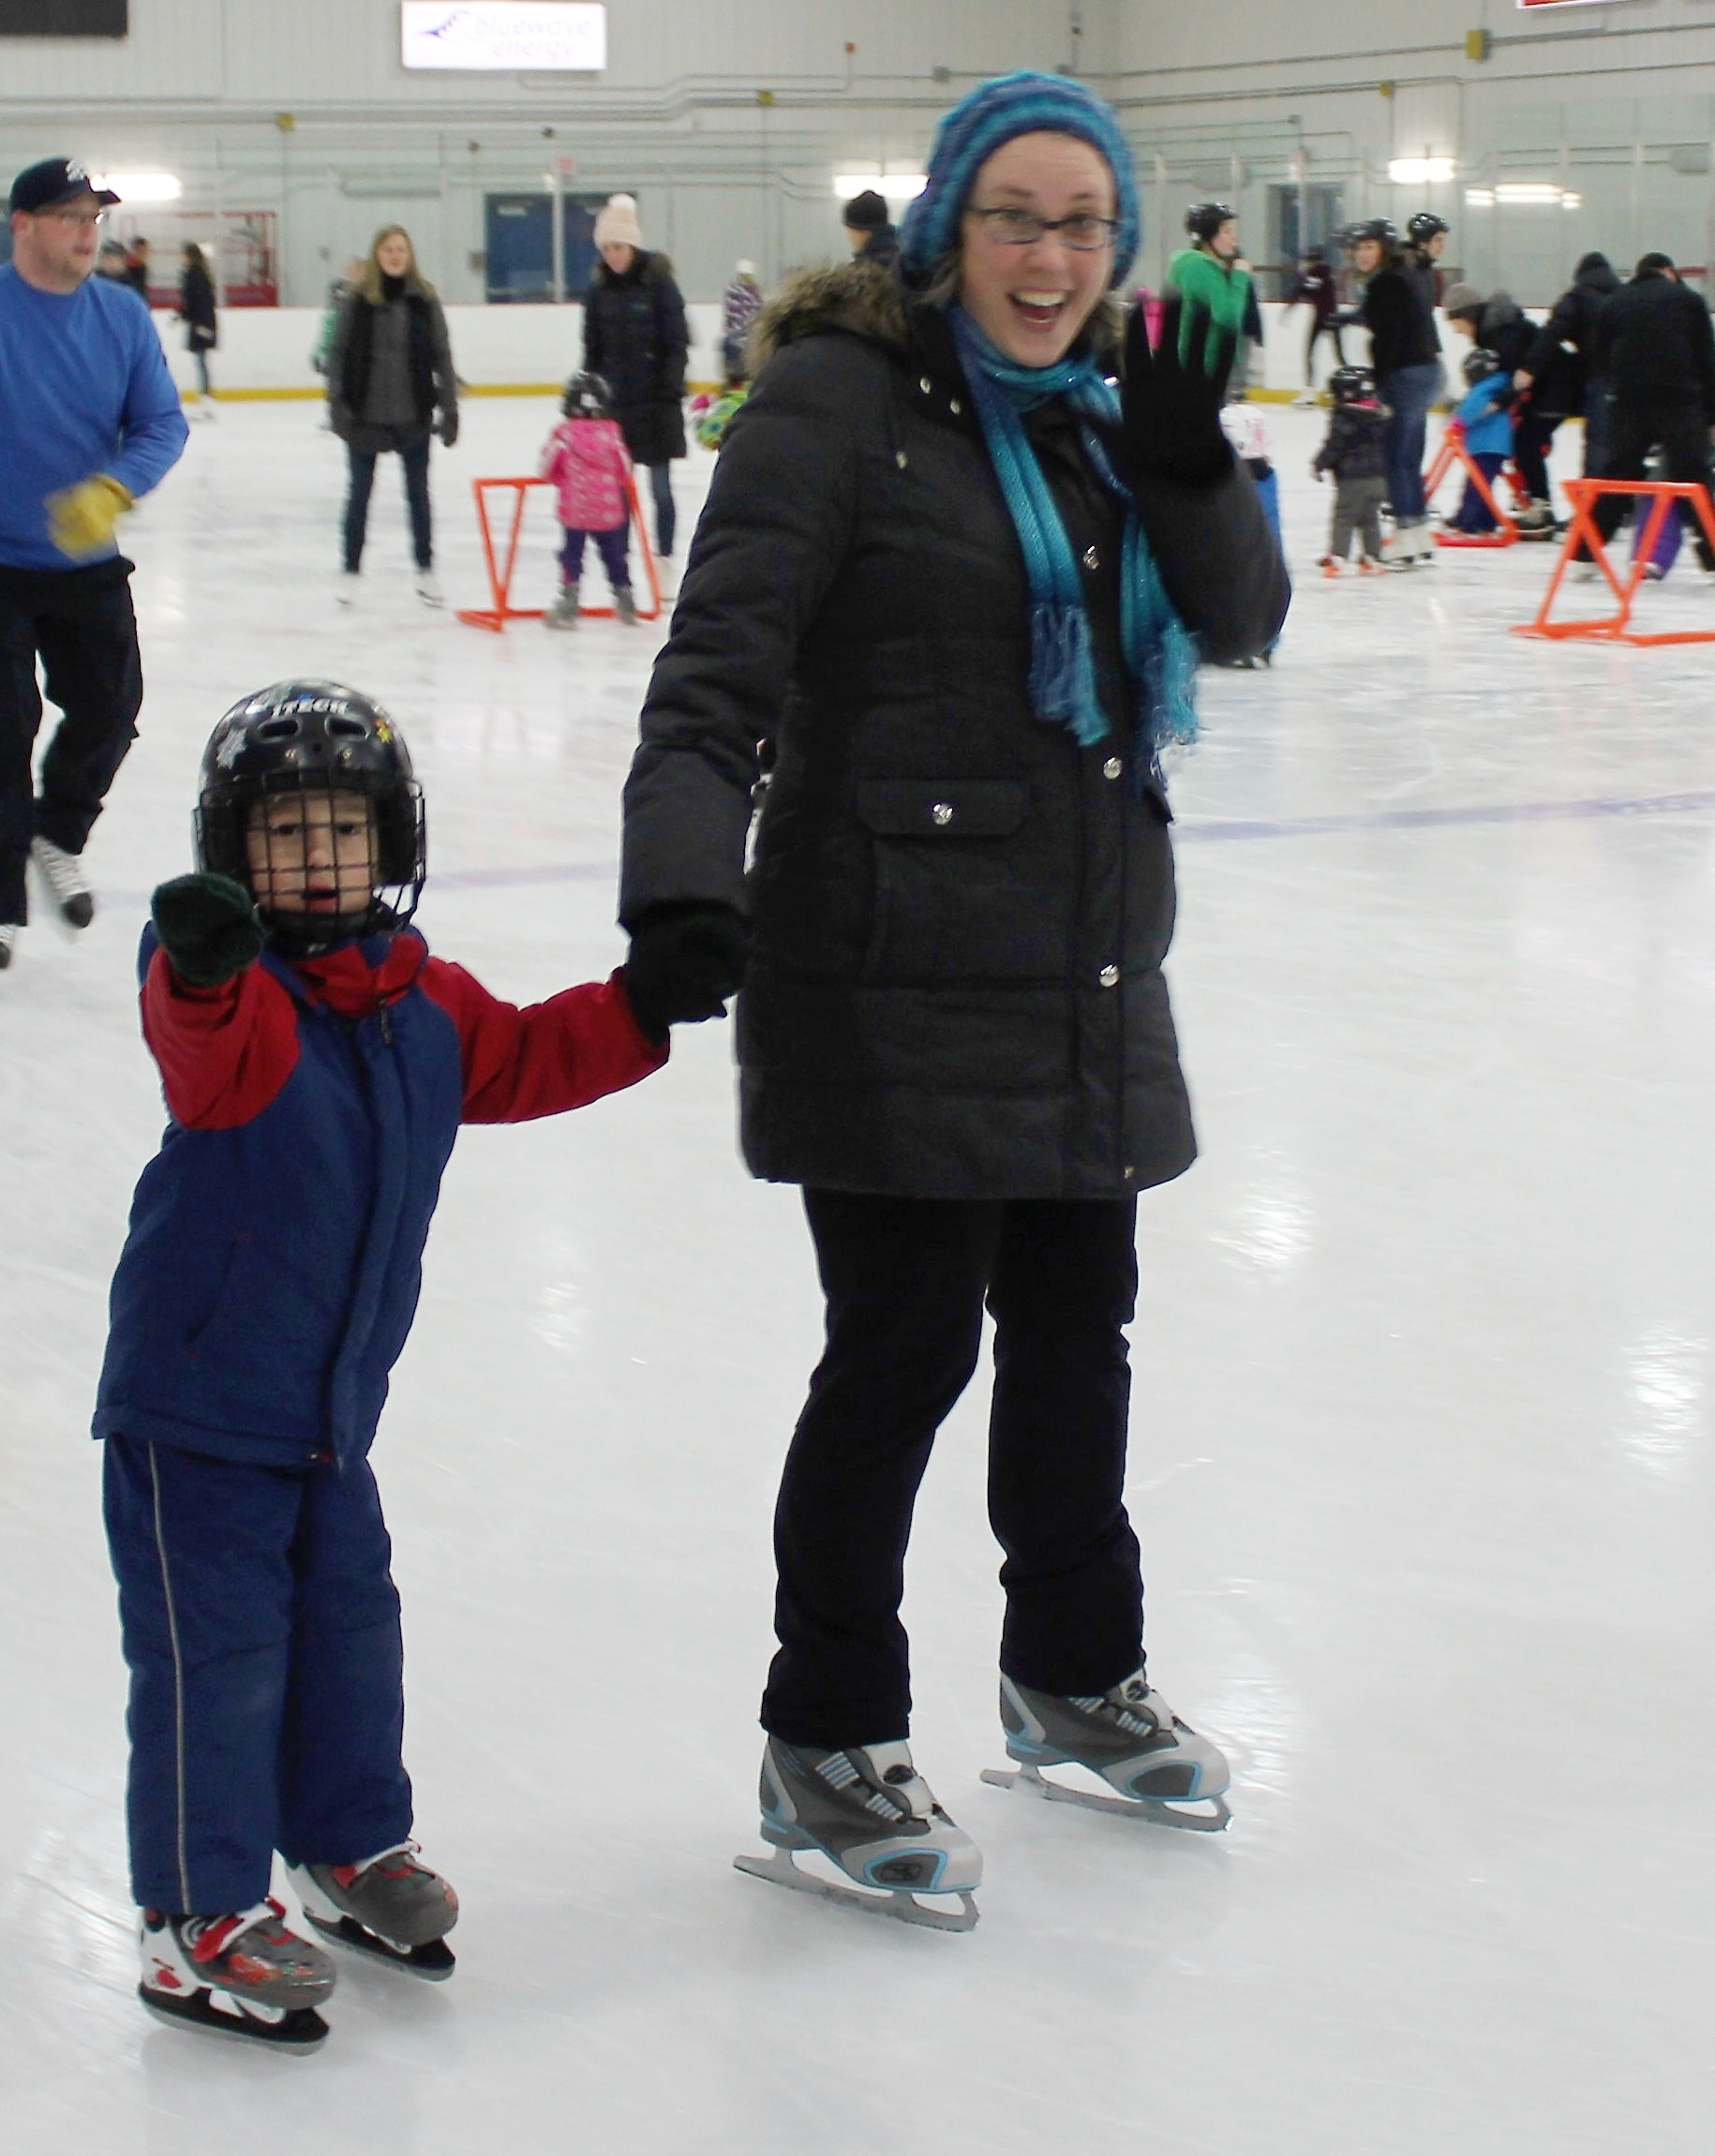 McKinley with Mom, Marianne practicing skating with no pusher. Way to go Mckinley